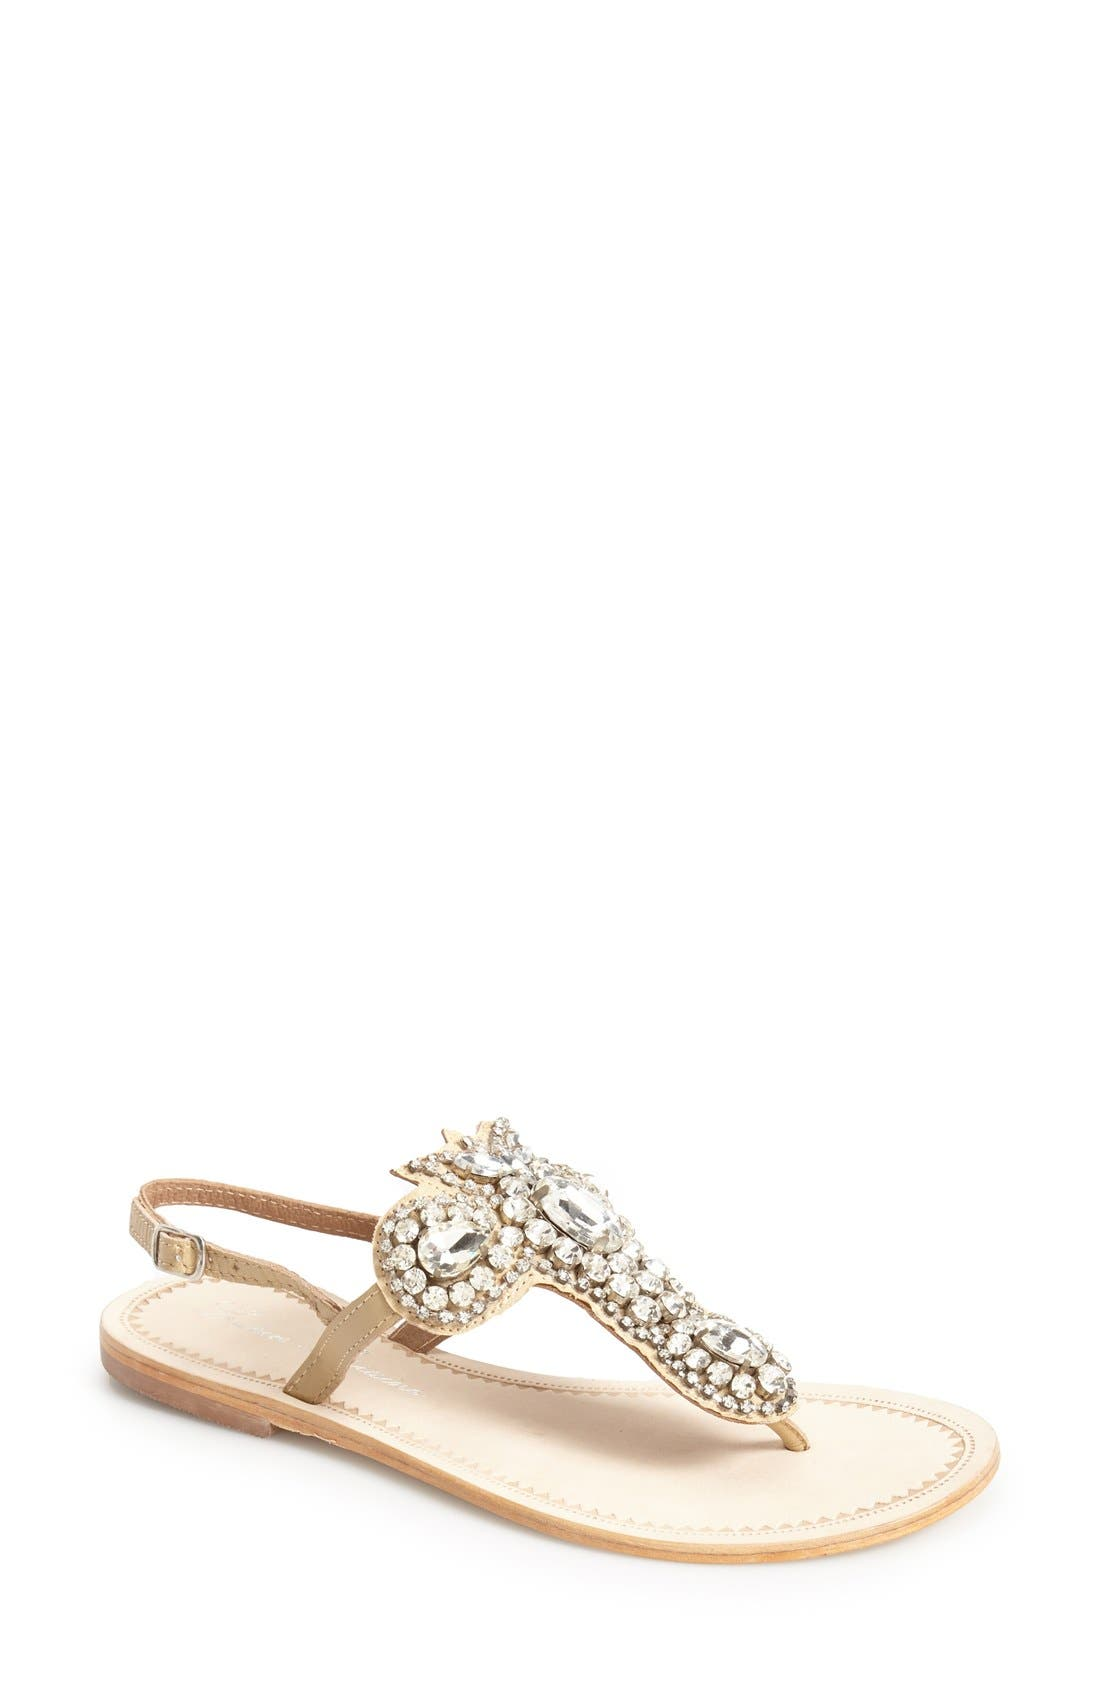 Alternate Image 1 Selected - Lauren Lorraine 'Ibiza' Crystal Thong Sandal (Women)